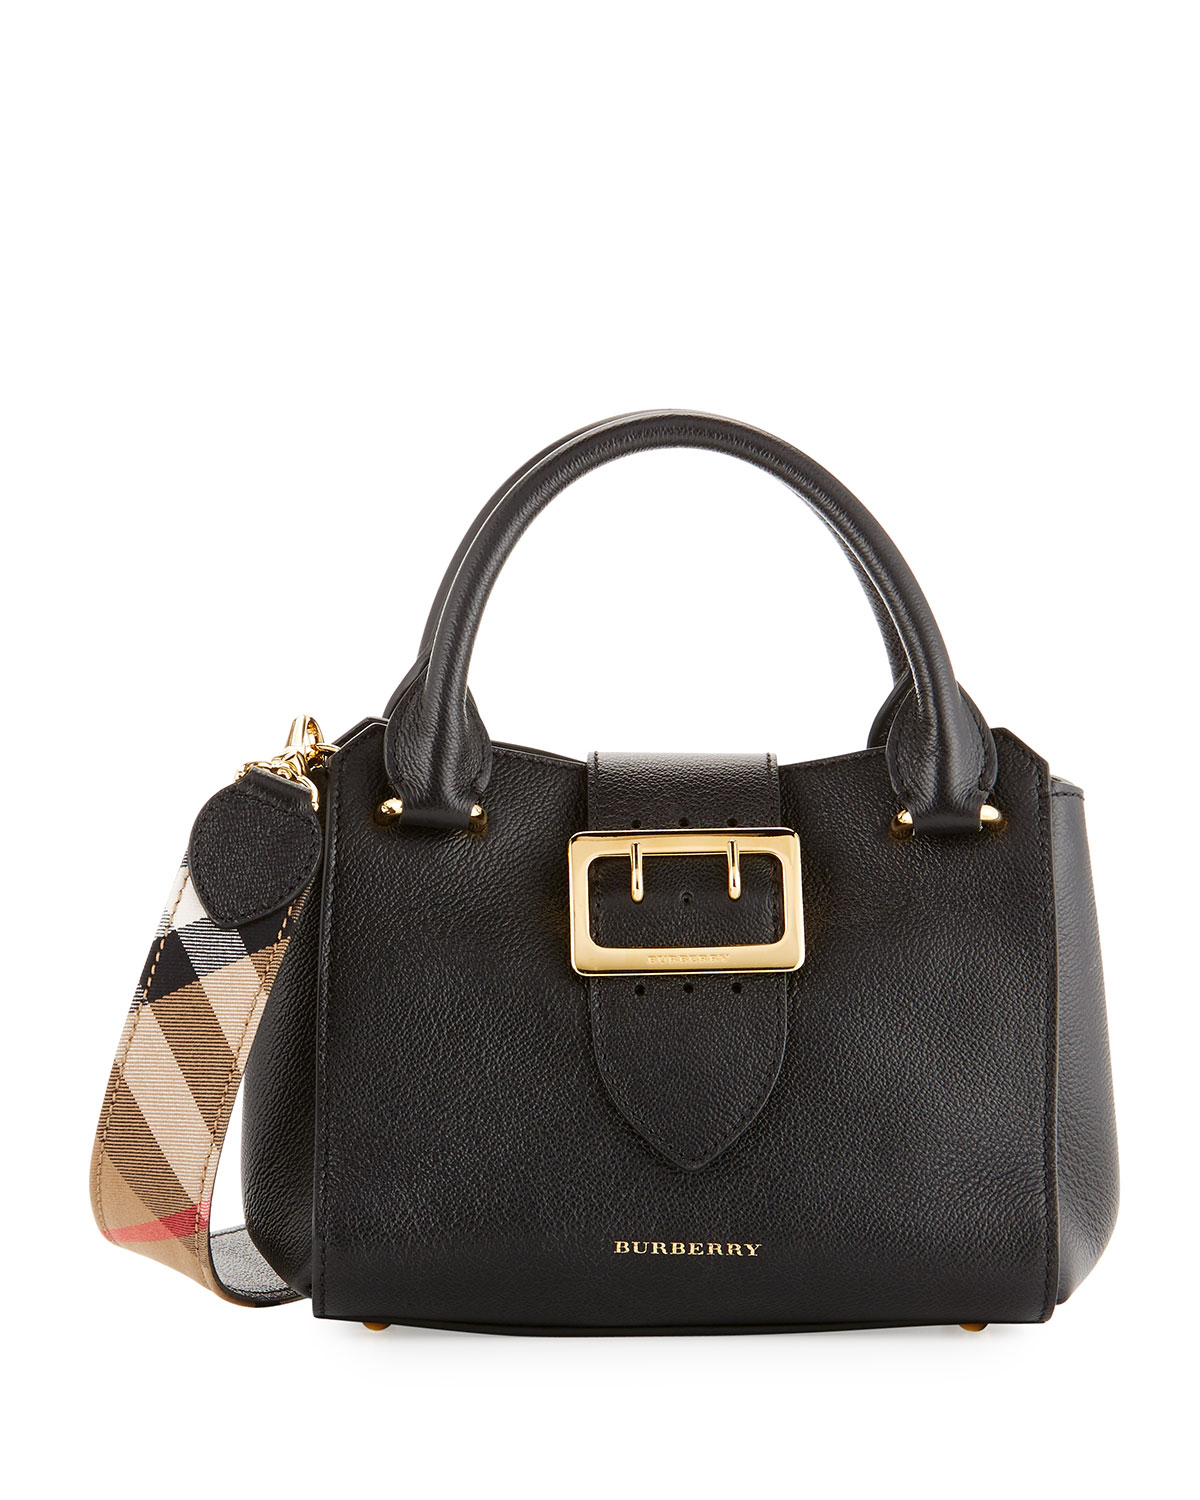 Burberry Buckle Small Leather Tote Bag Black Neiman Marcus